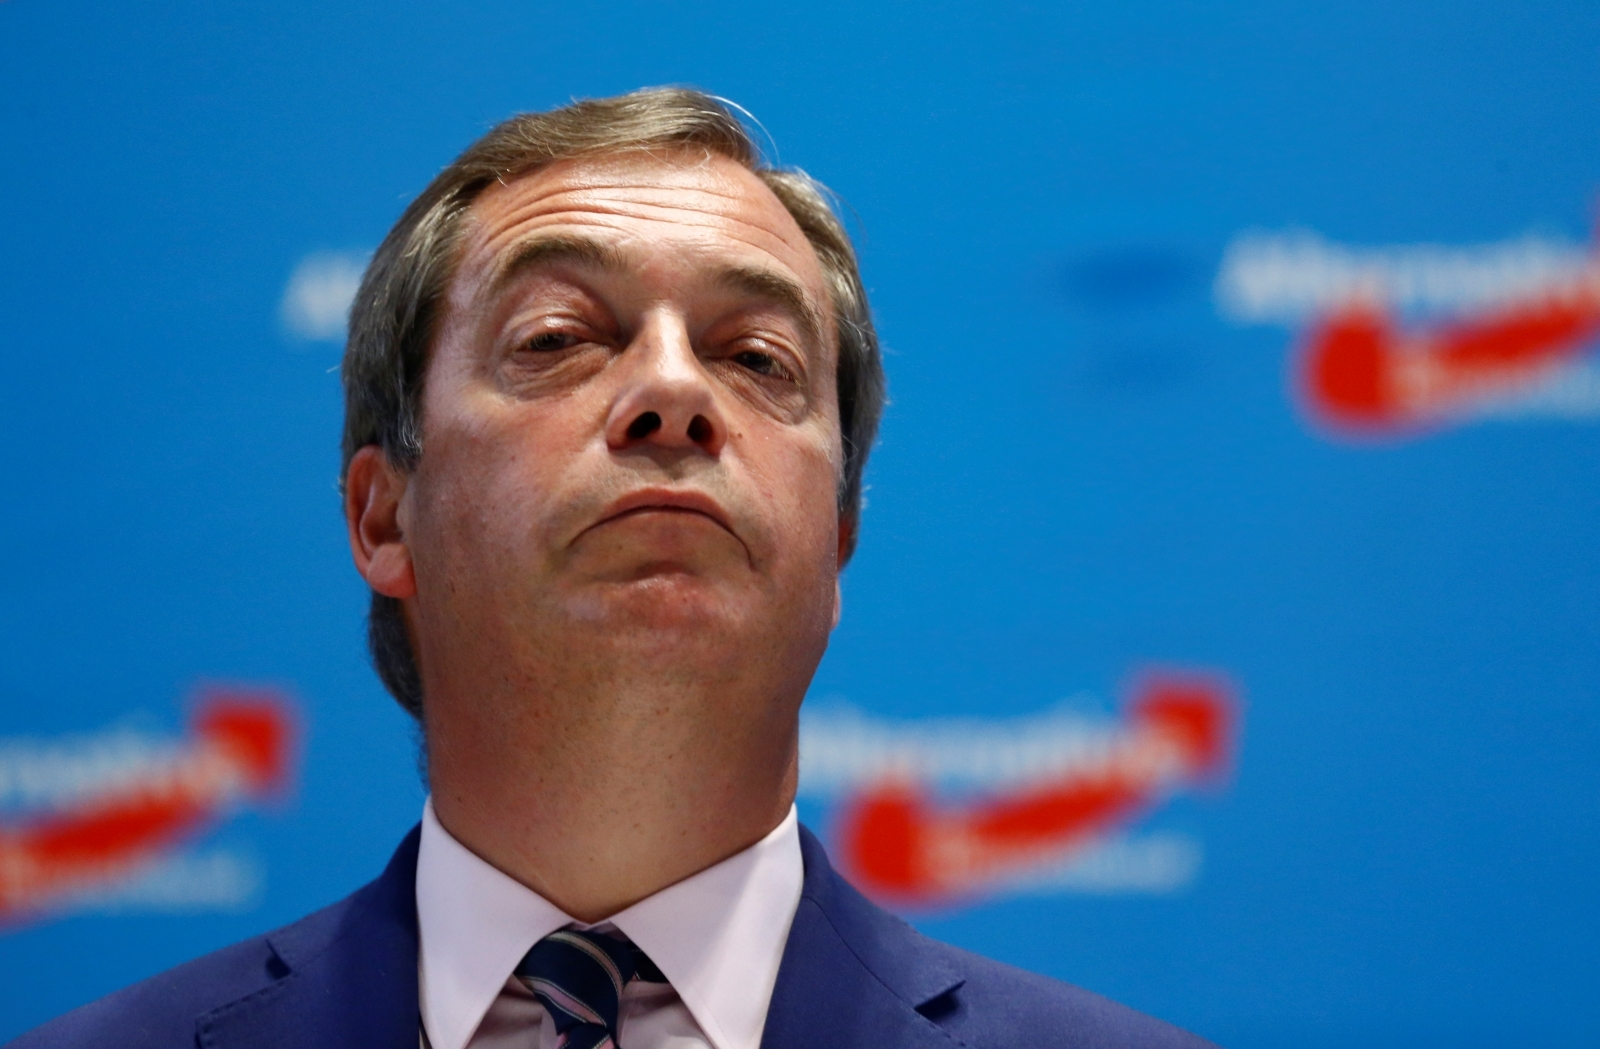 Nigel Farage criticised for saying he will keep European Union pension